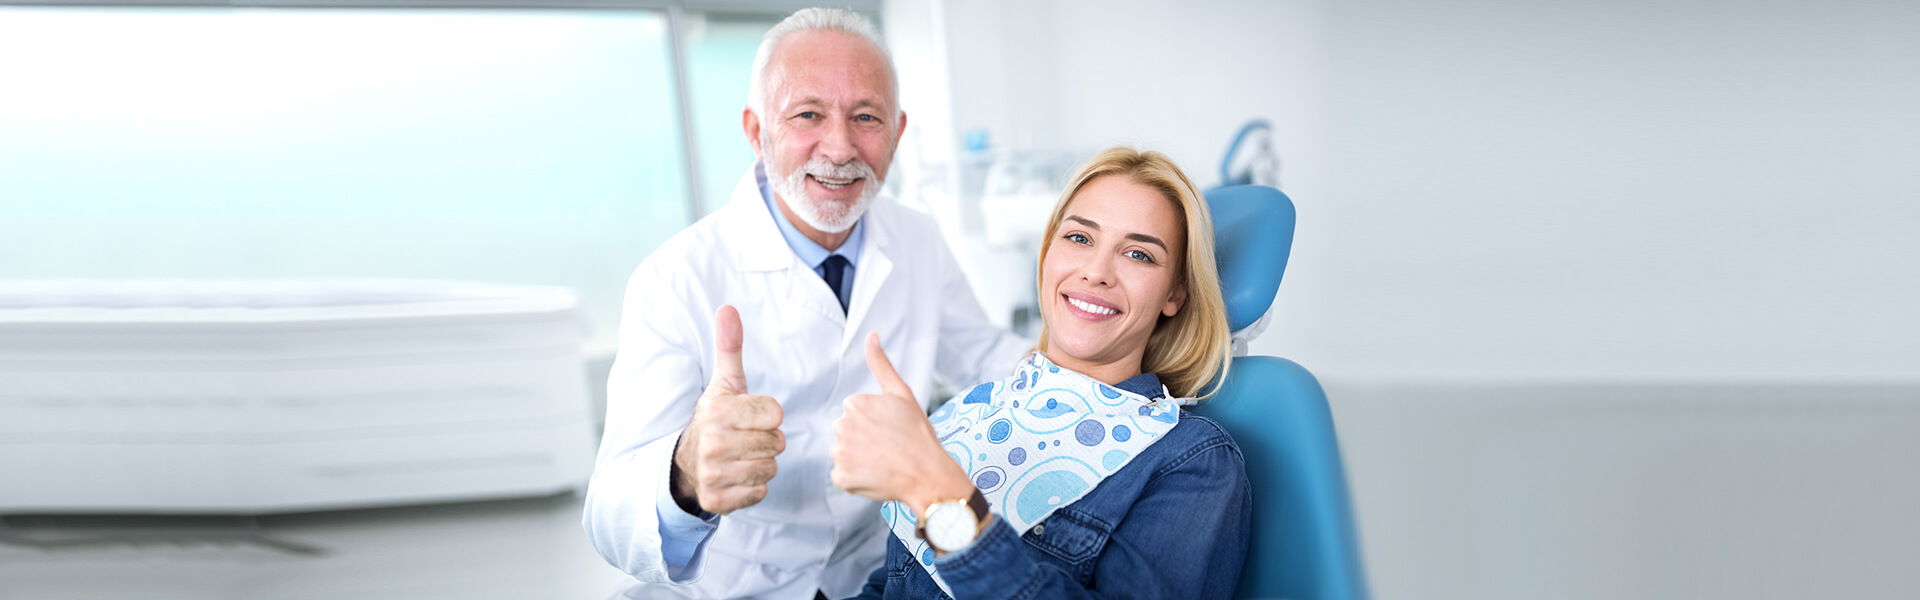 5 Negative Effects of Skipping Dental Checkups